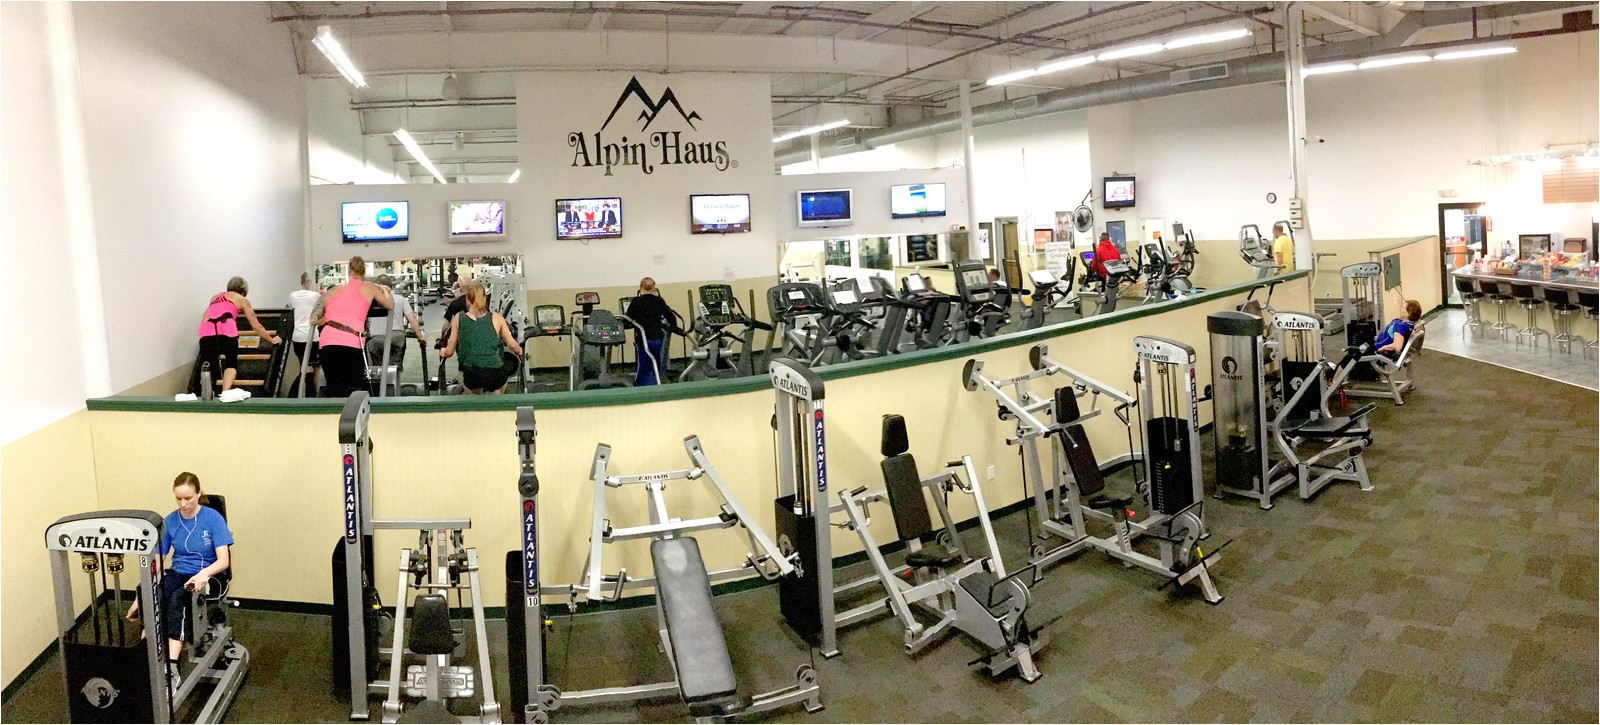 this is the cardio room and its equipment you will find at alpin haus fitness center